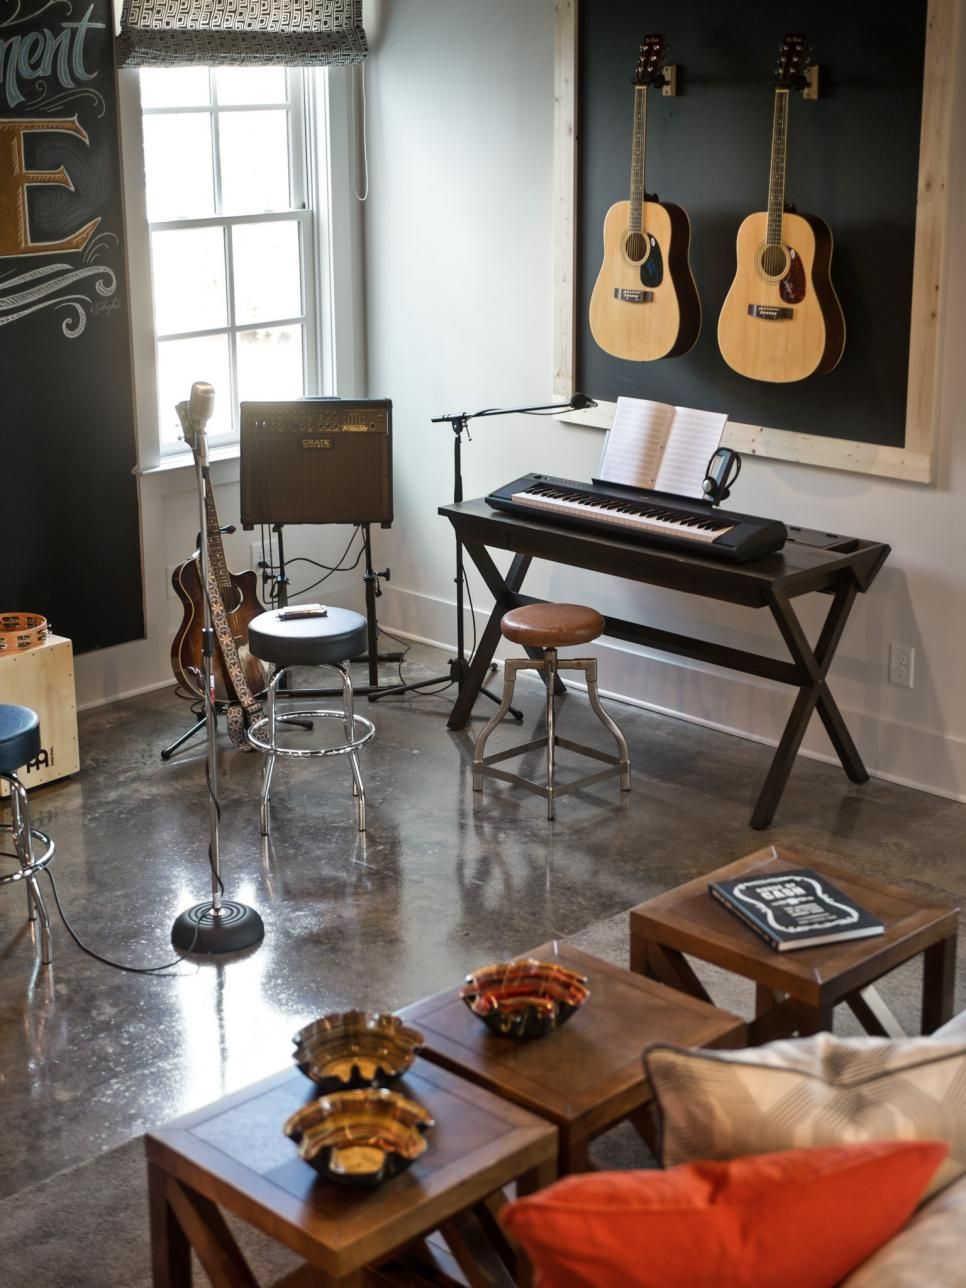 Music Studio Room Design: Stage Pictures From HGTV Smart Home 2014